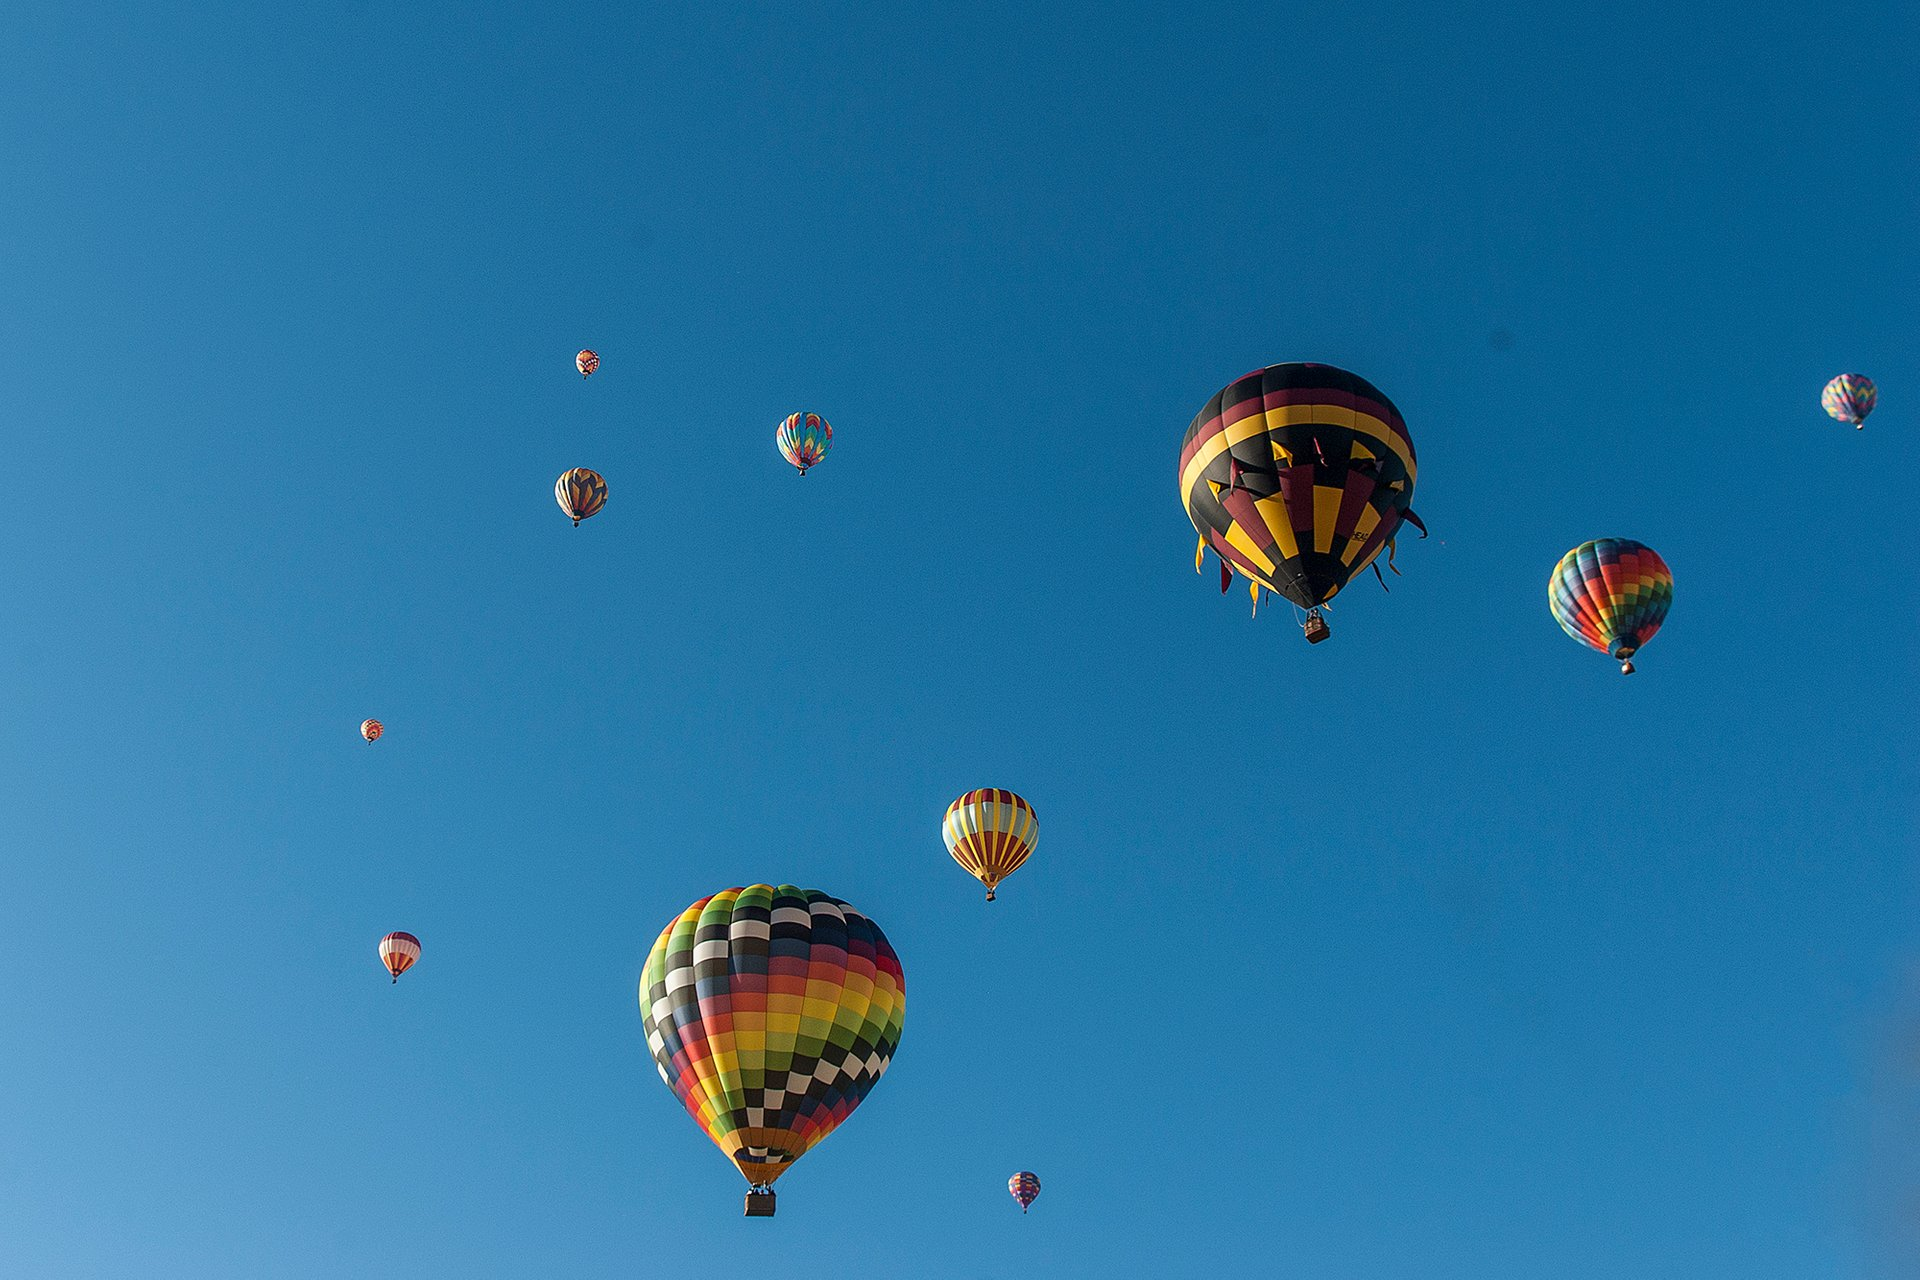 Best time to see Carolina Balloon Fest 2020